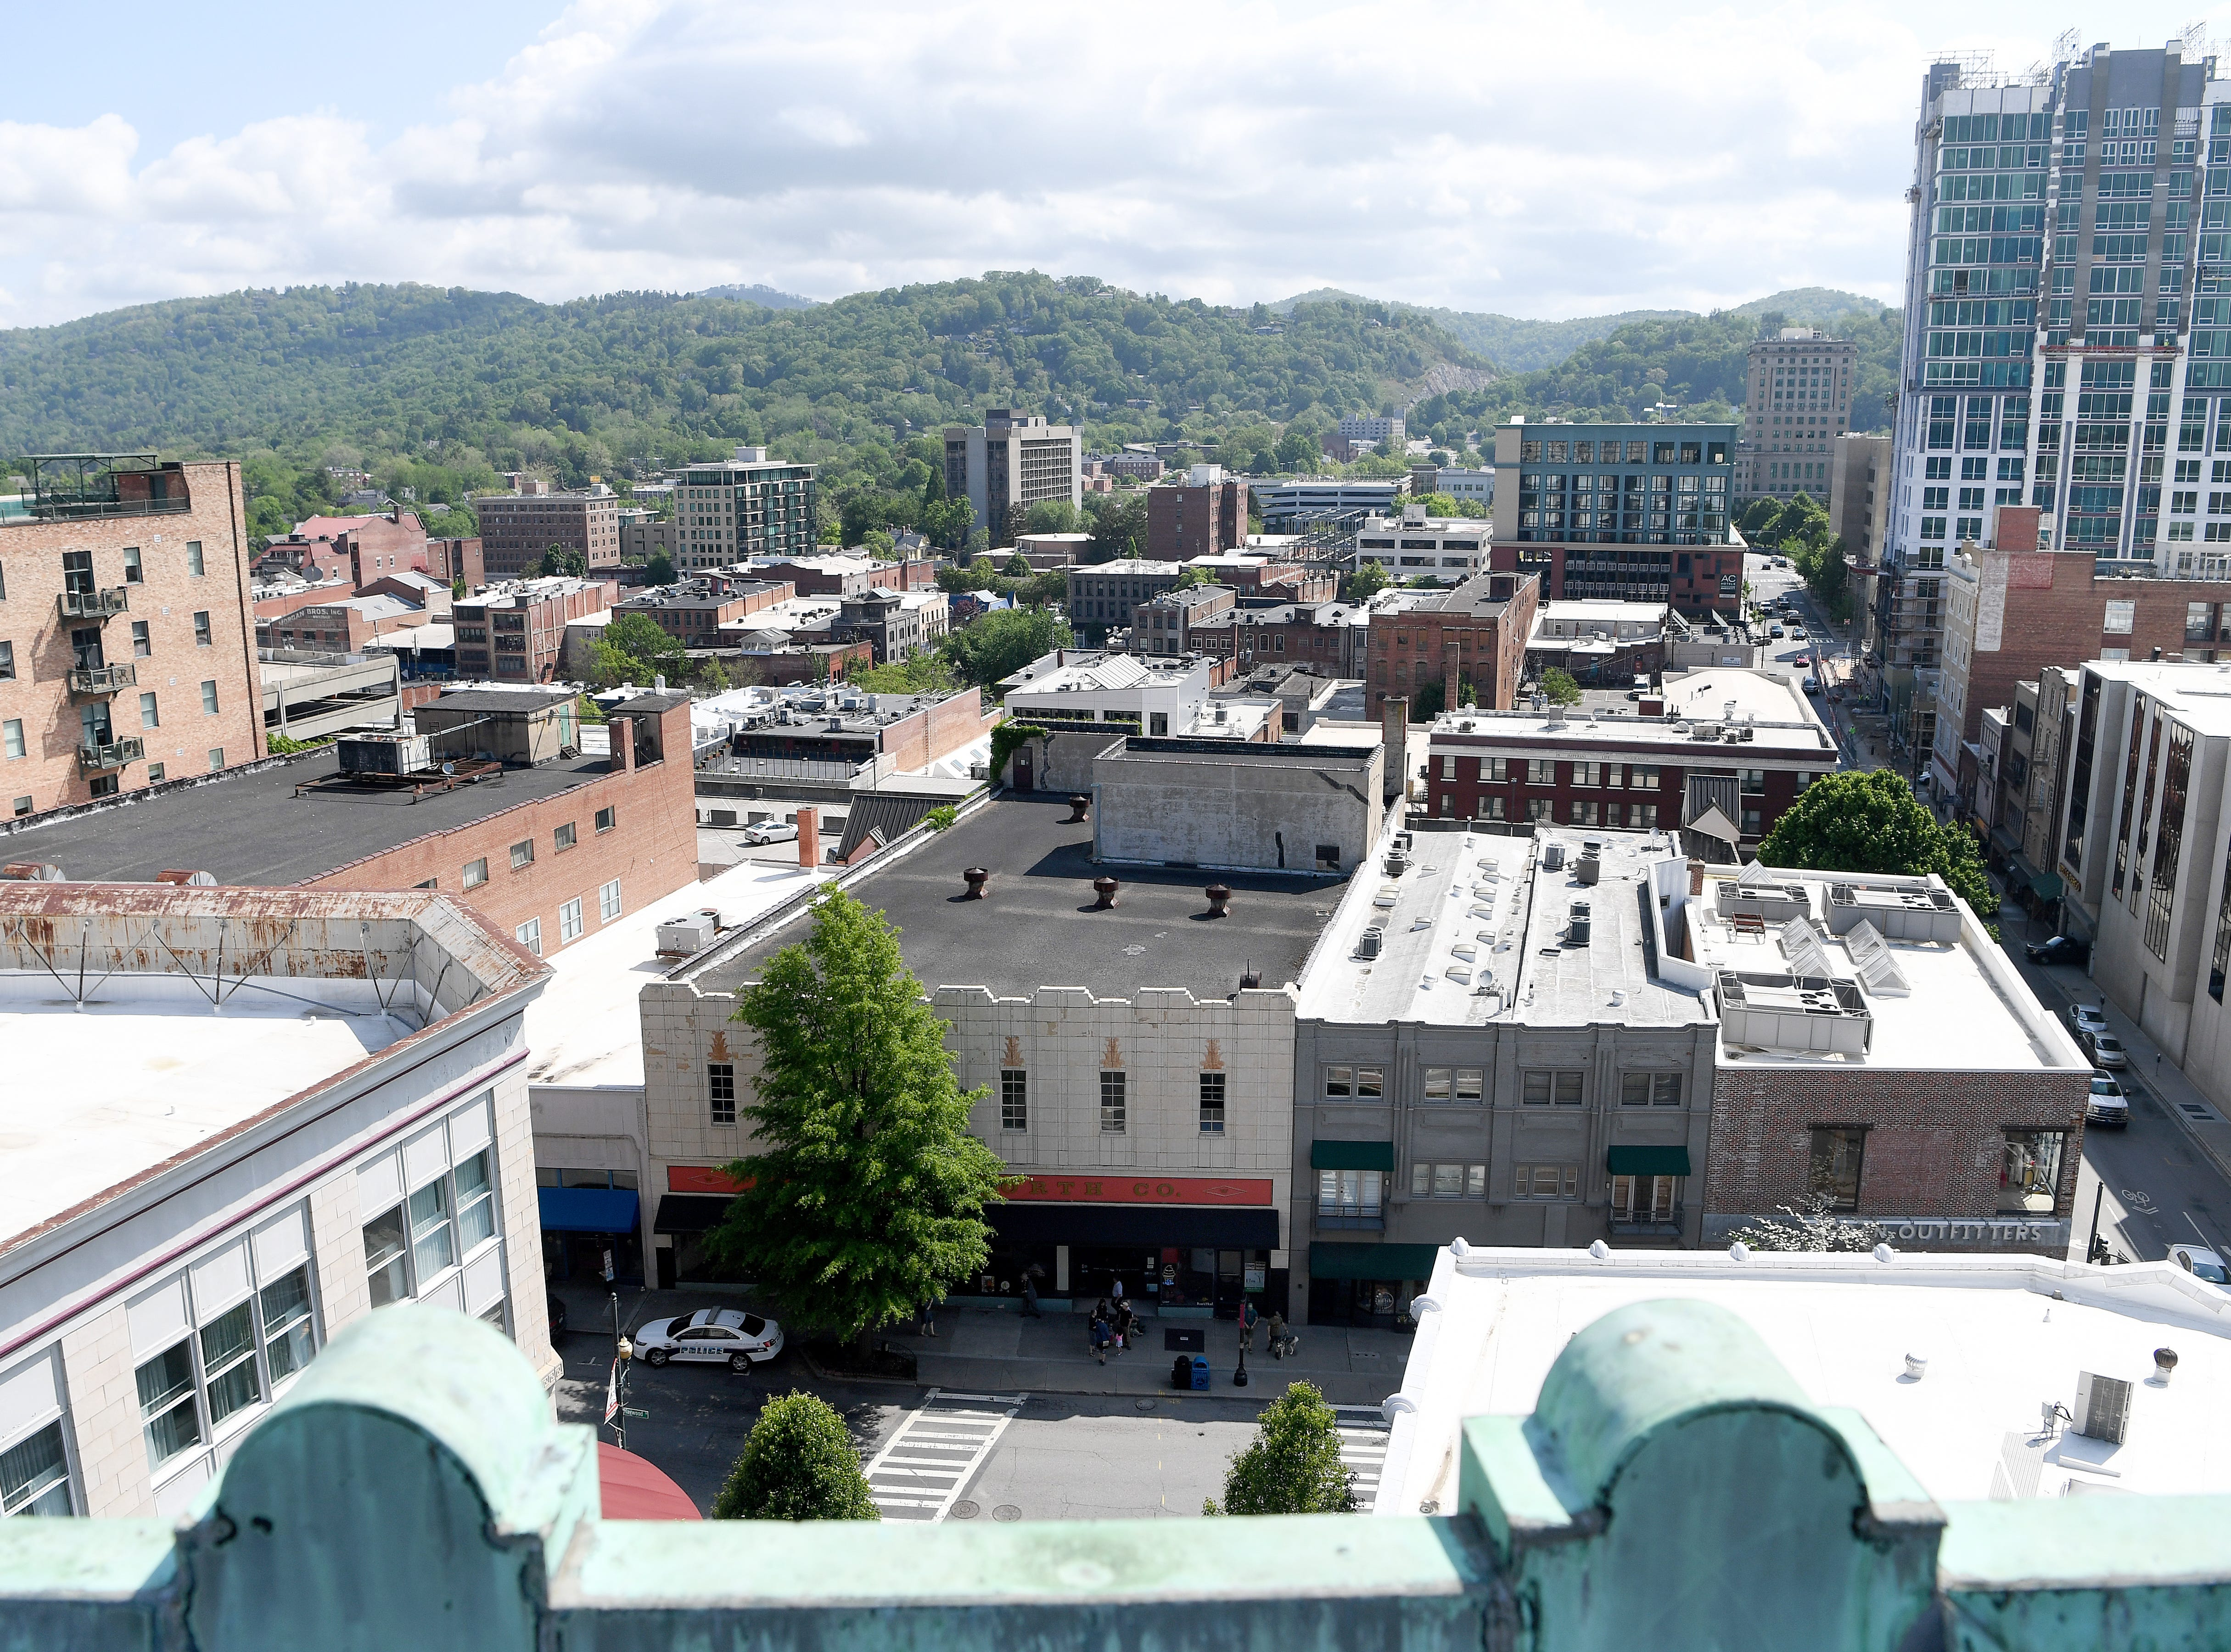 The view from the roof of the Flatiron Building shows downtown Asheville and beyond.